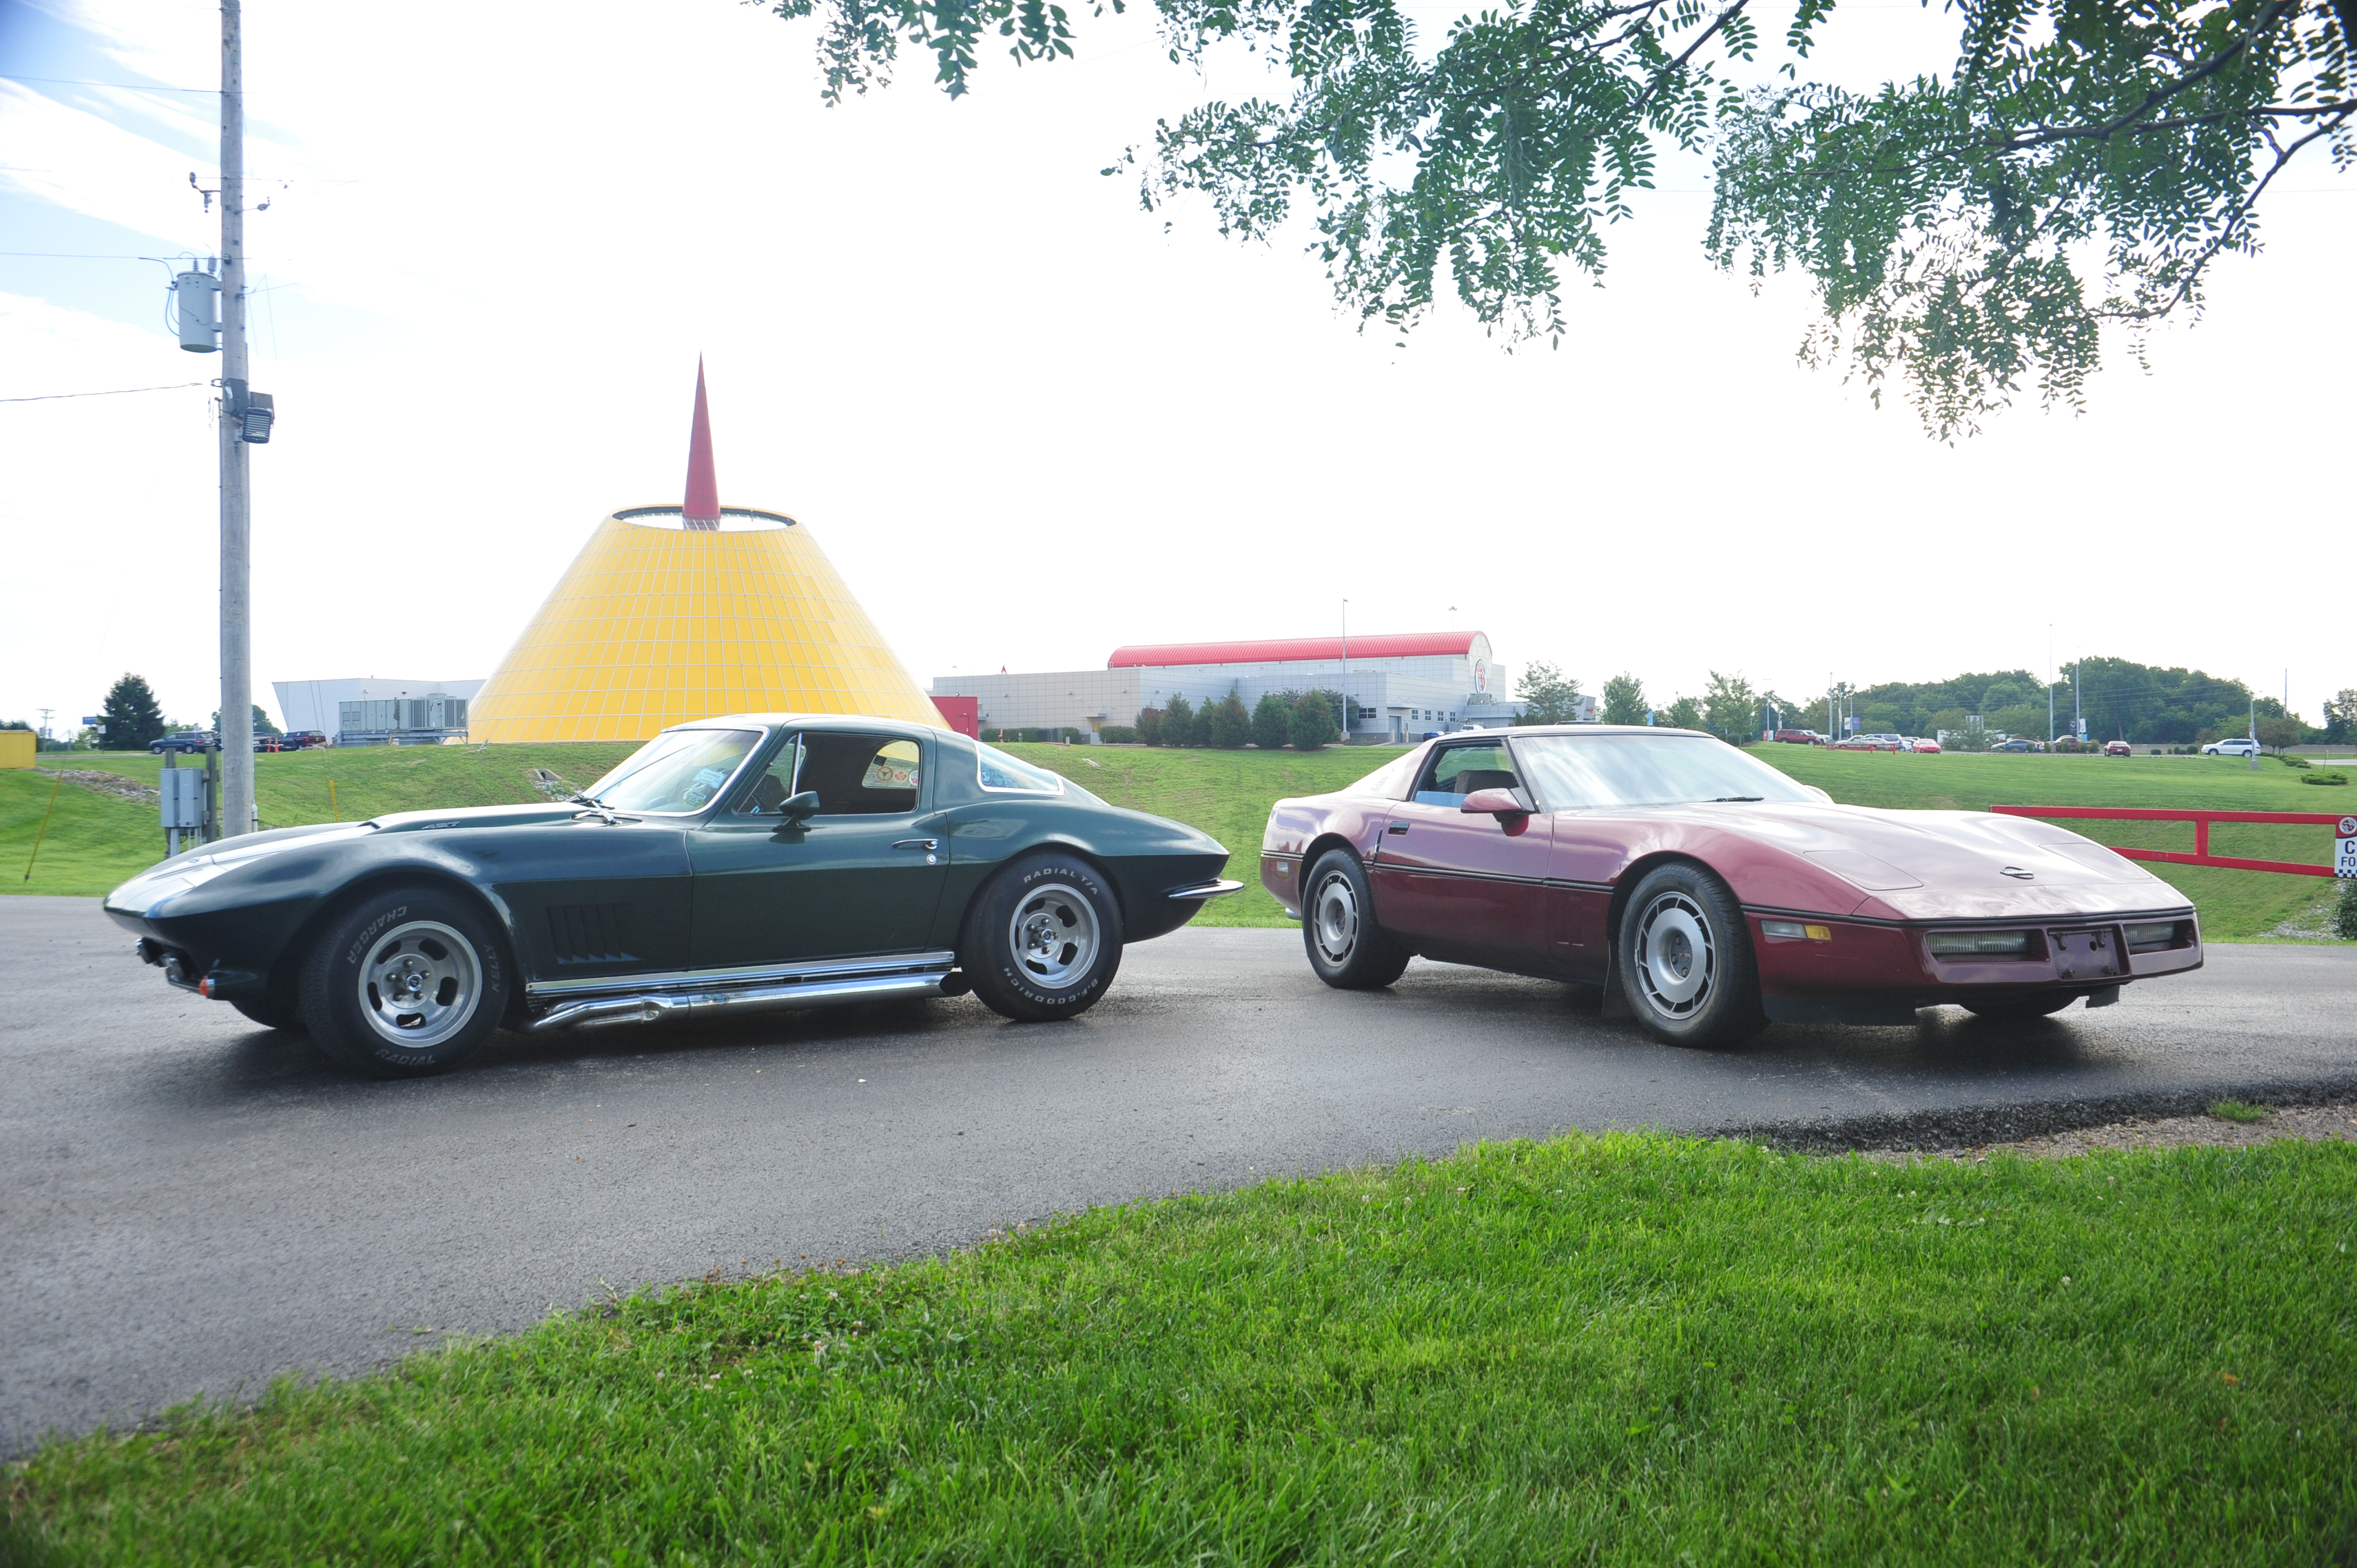 Bill Engle's 1967 and 1987 Corvettes